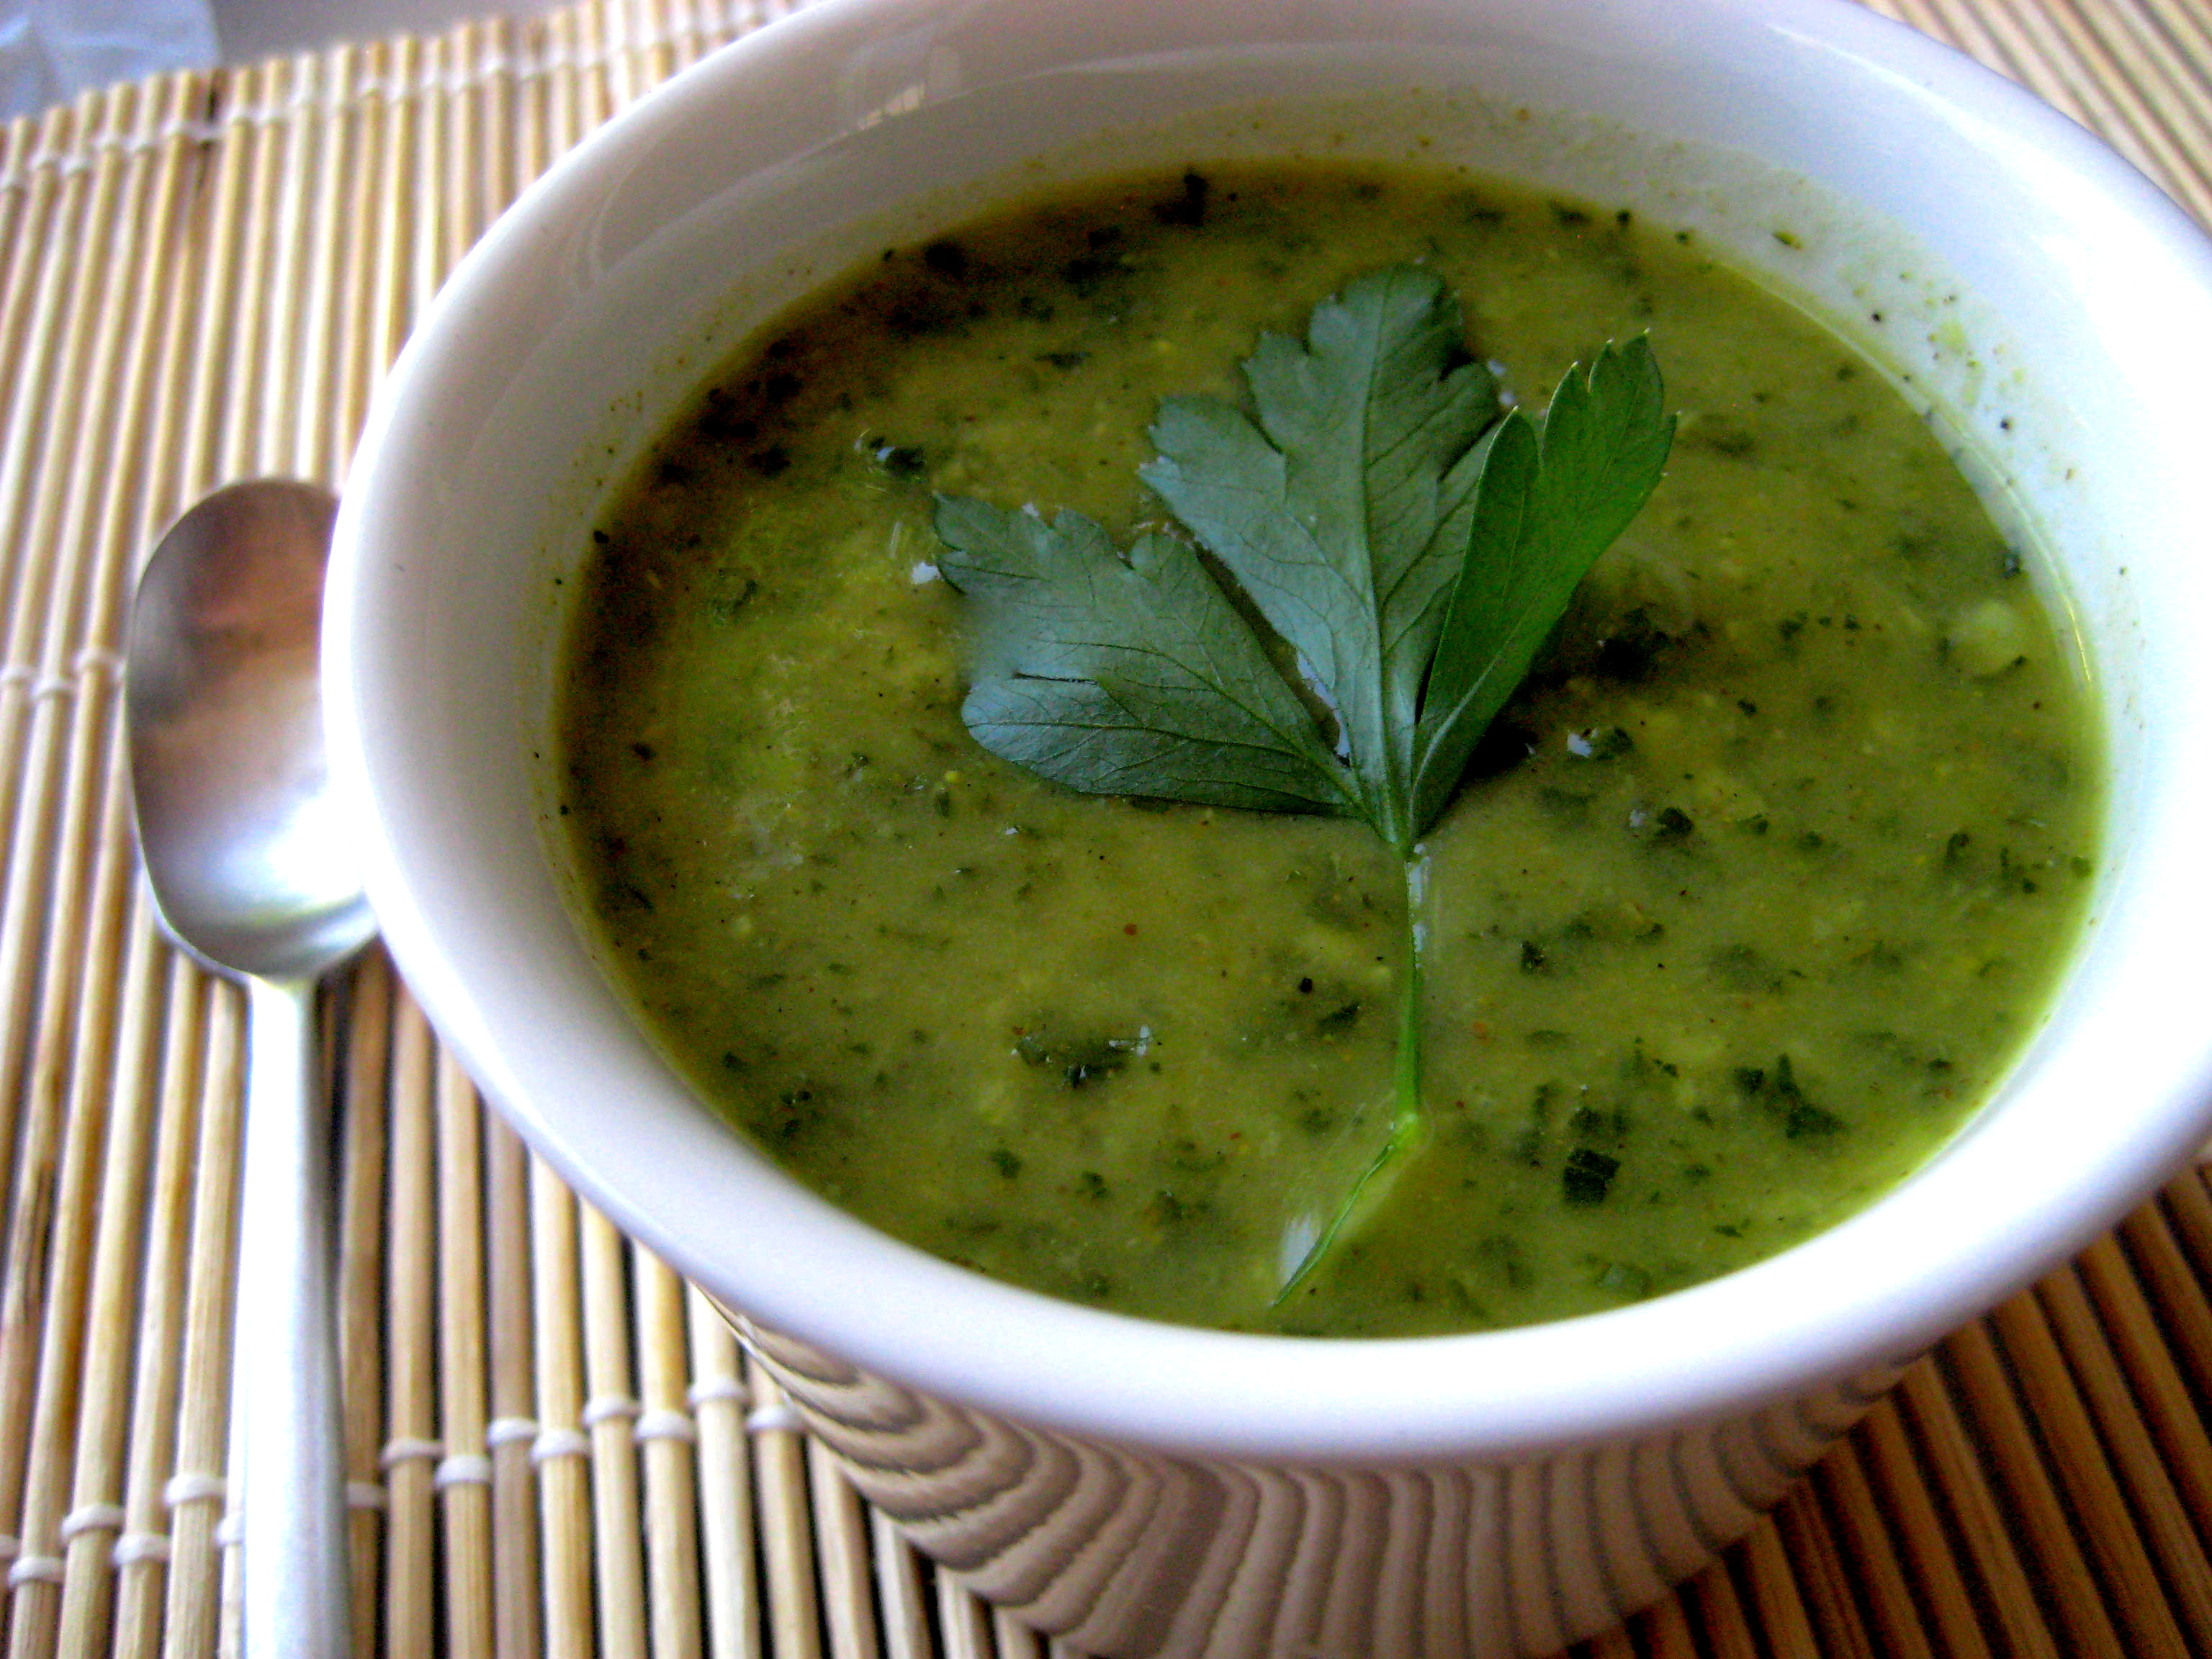 Curried Zucchini And Kale Soup Laurie Sadowski